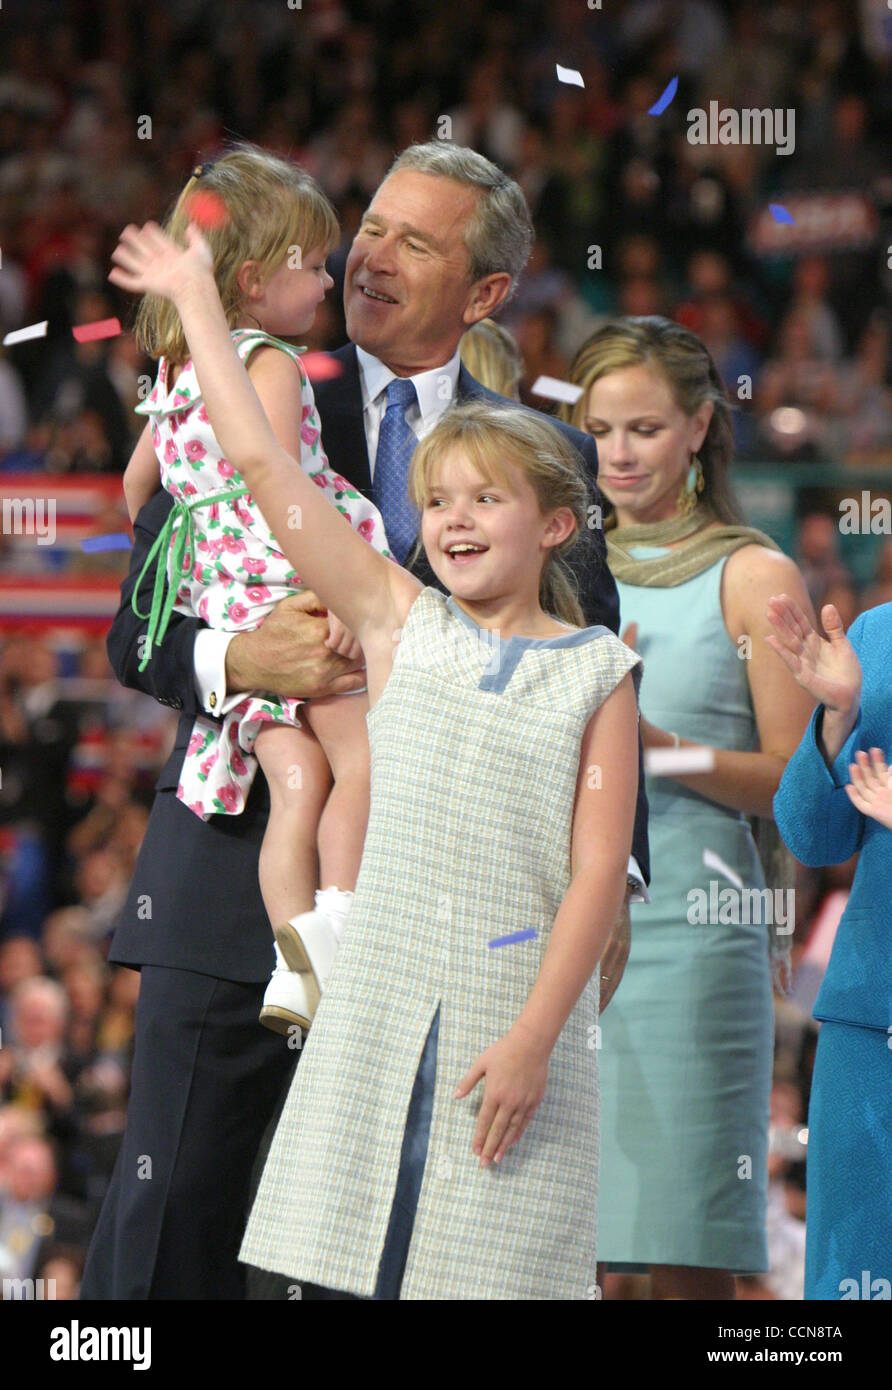 George w bush daughters naked, very young pre lola girls self pics